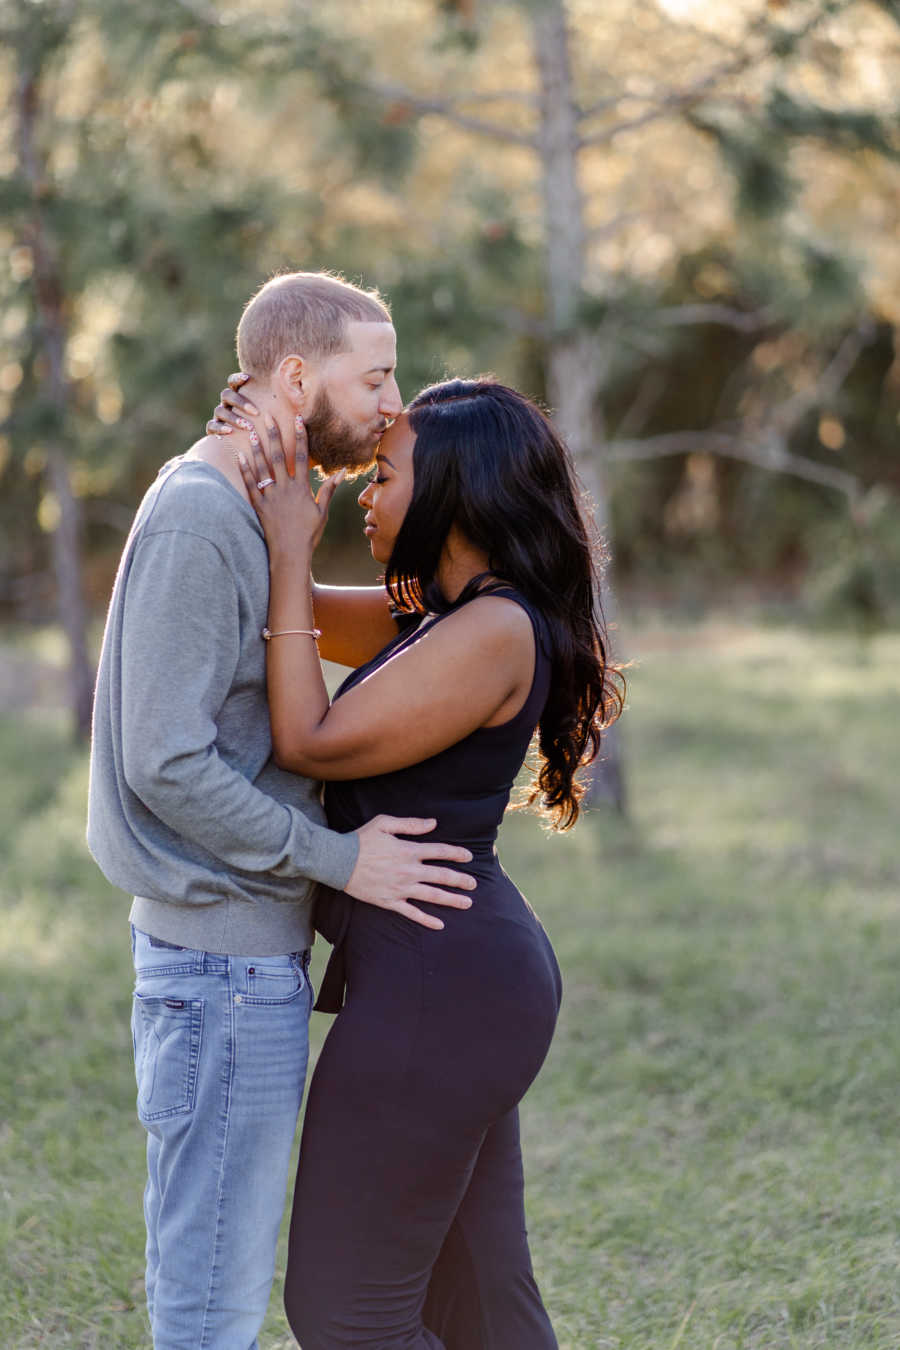 Young man kisses his wife on the forehead in intimate moment during a photoshoot